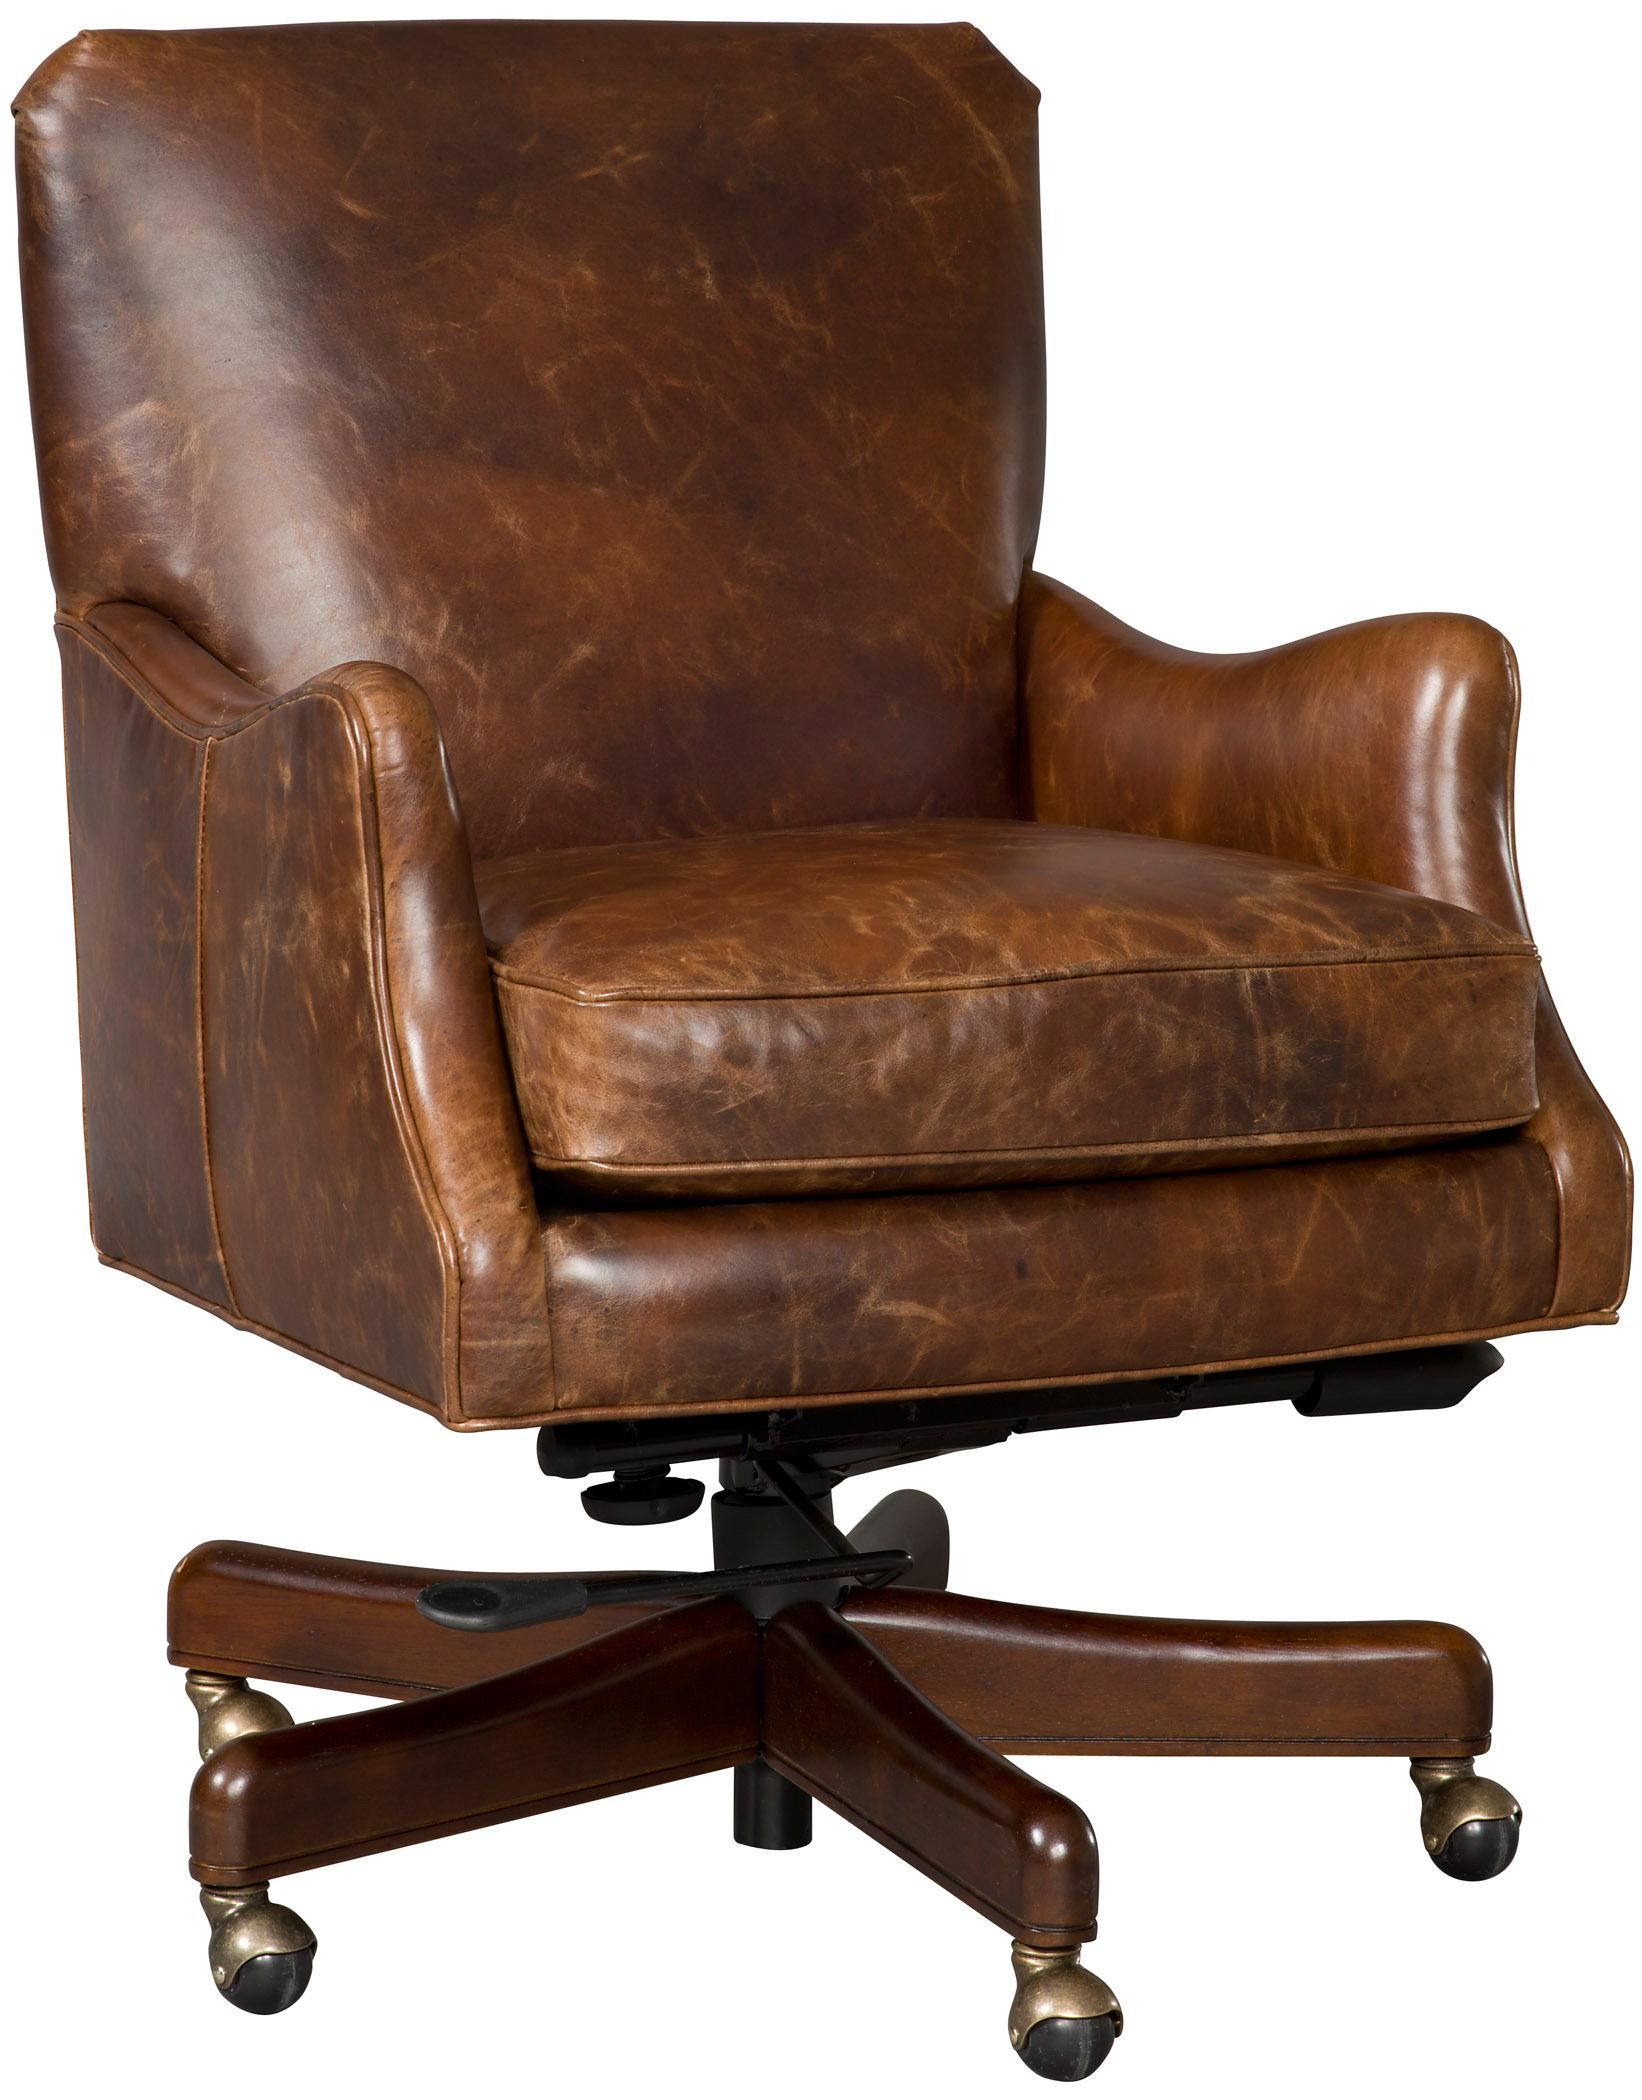 Executive Seating Executive Tilt Swivel Chair by Hooker Furniture at Belfort Furniture